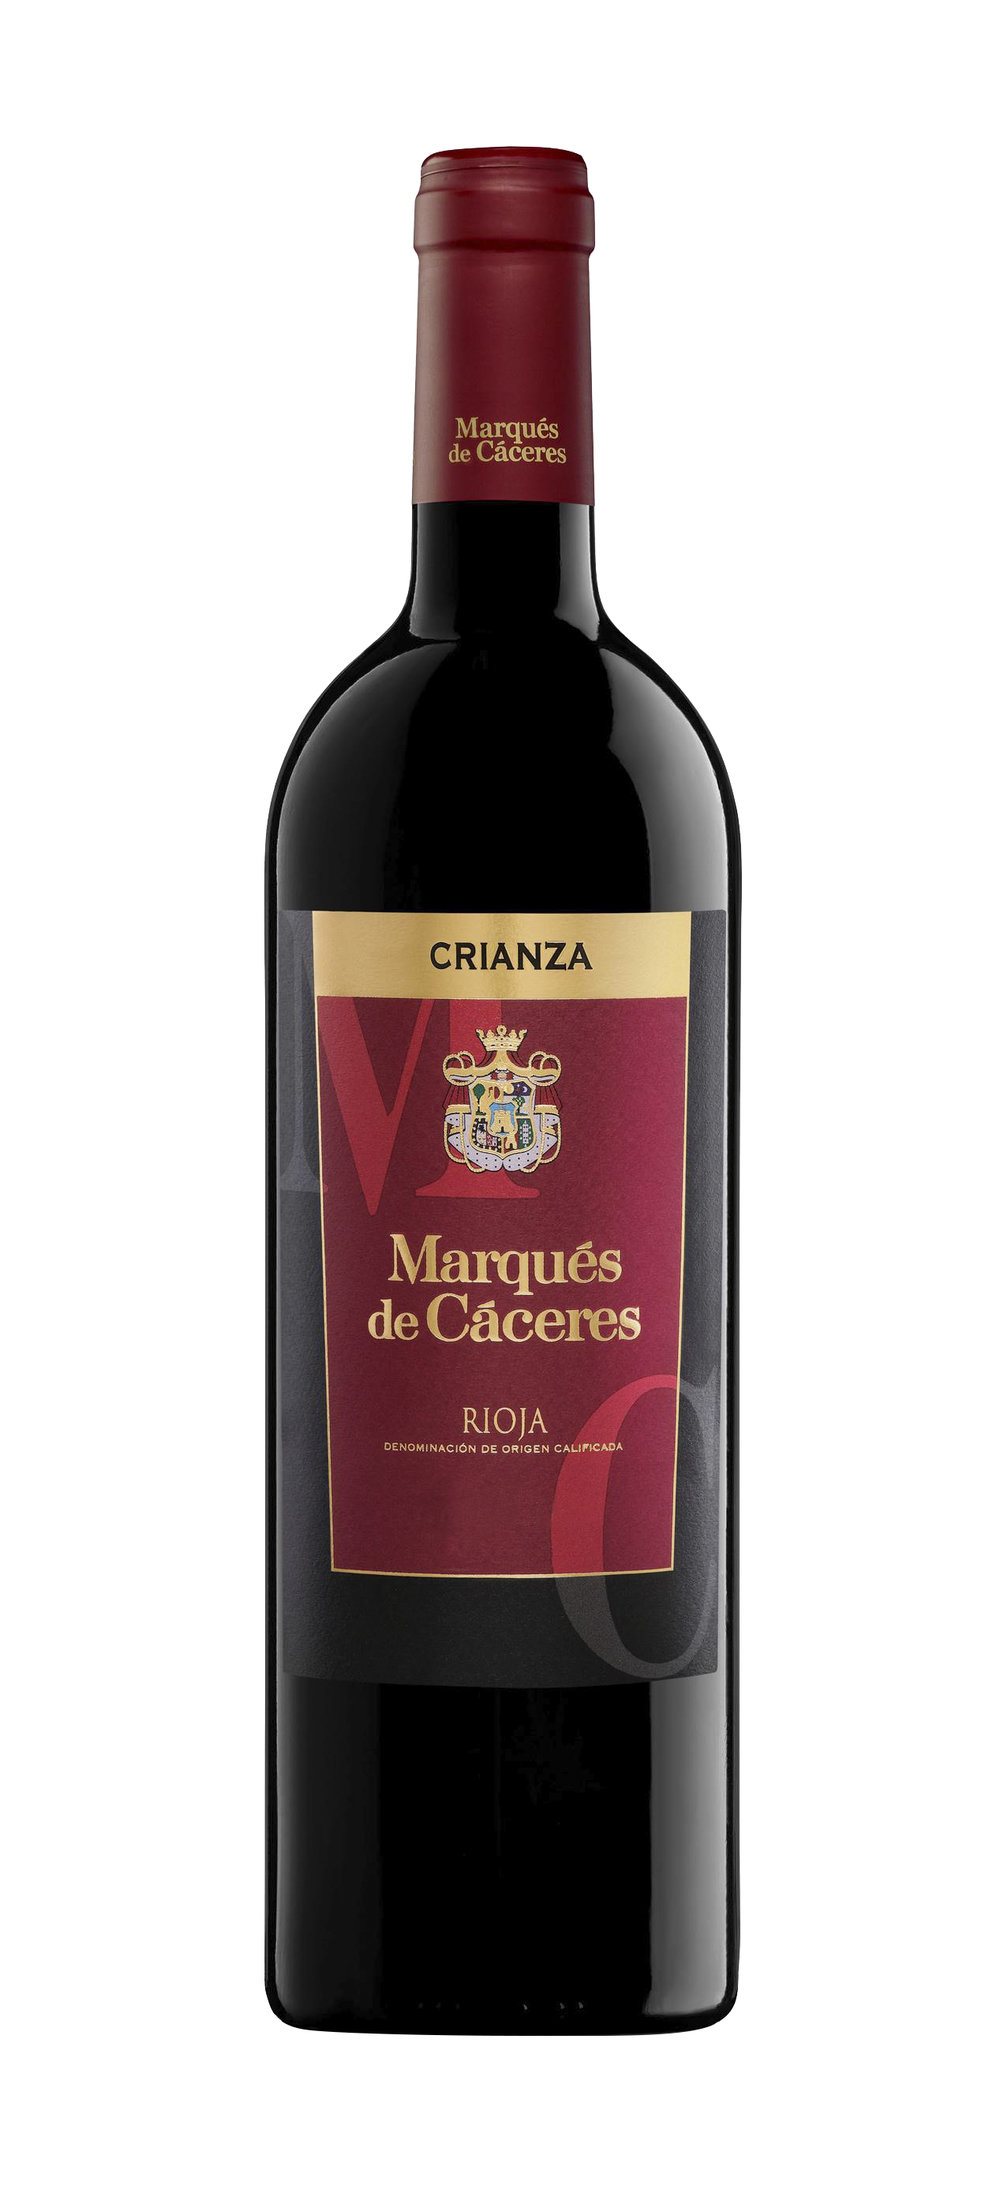 Marques de Caceres Crianza Bottle.jpg